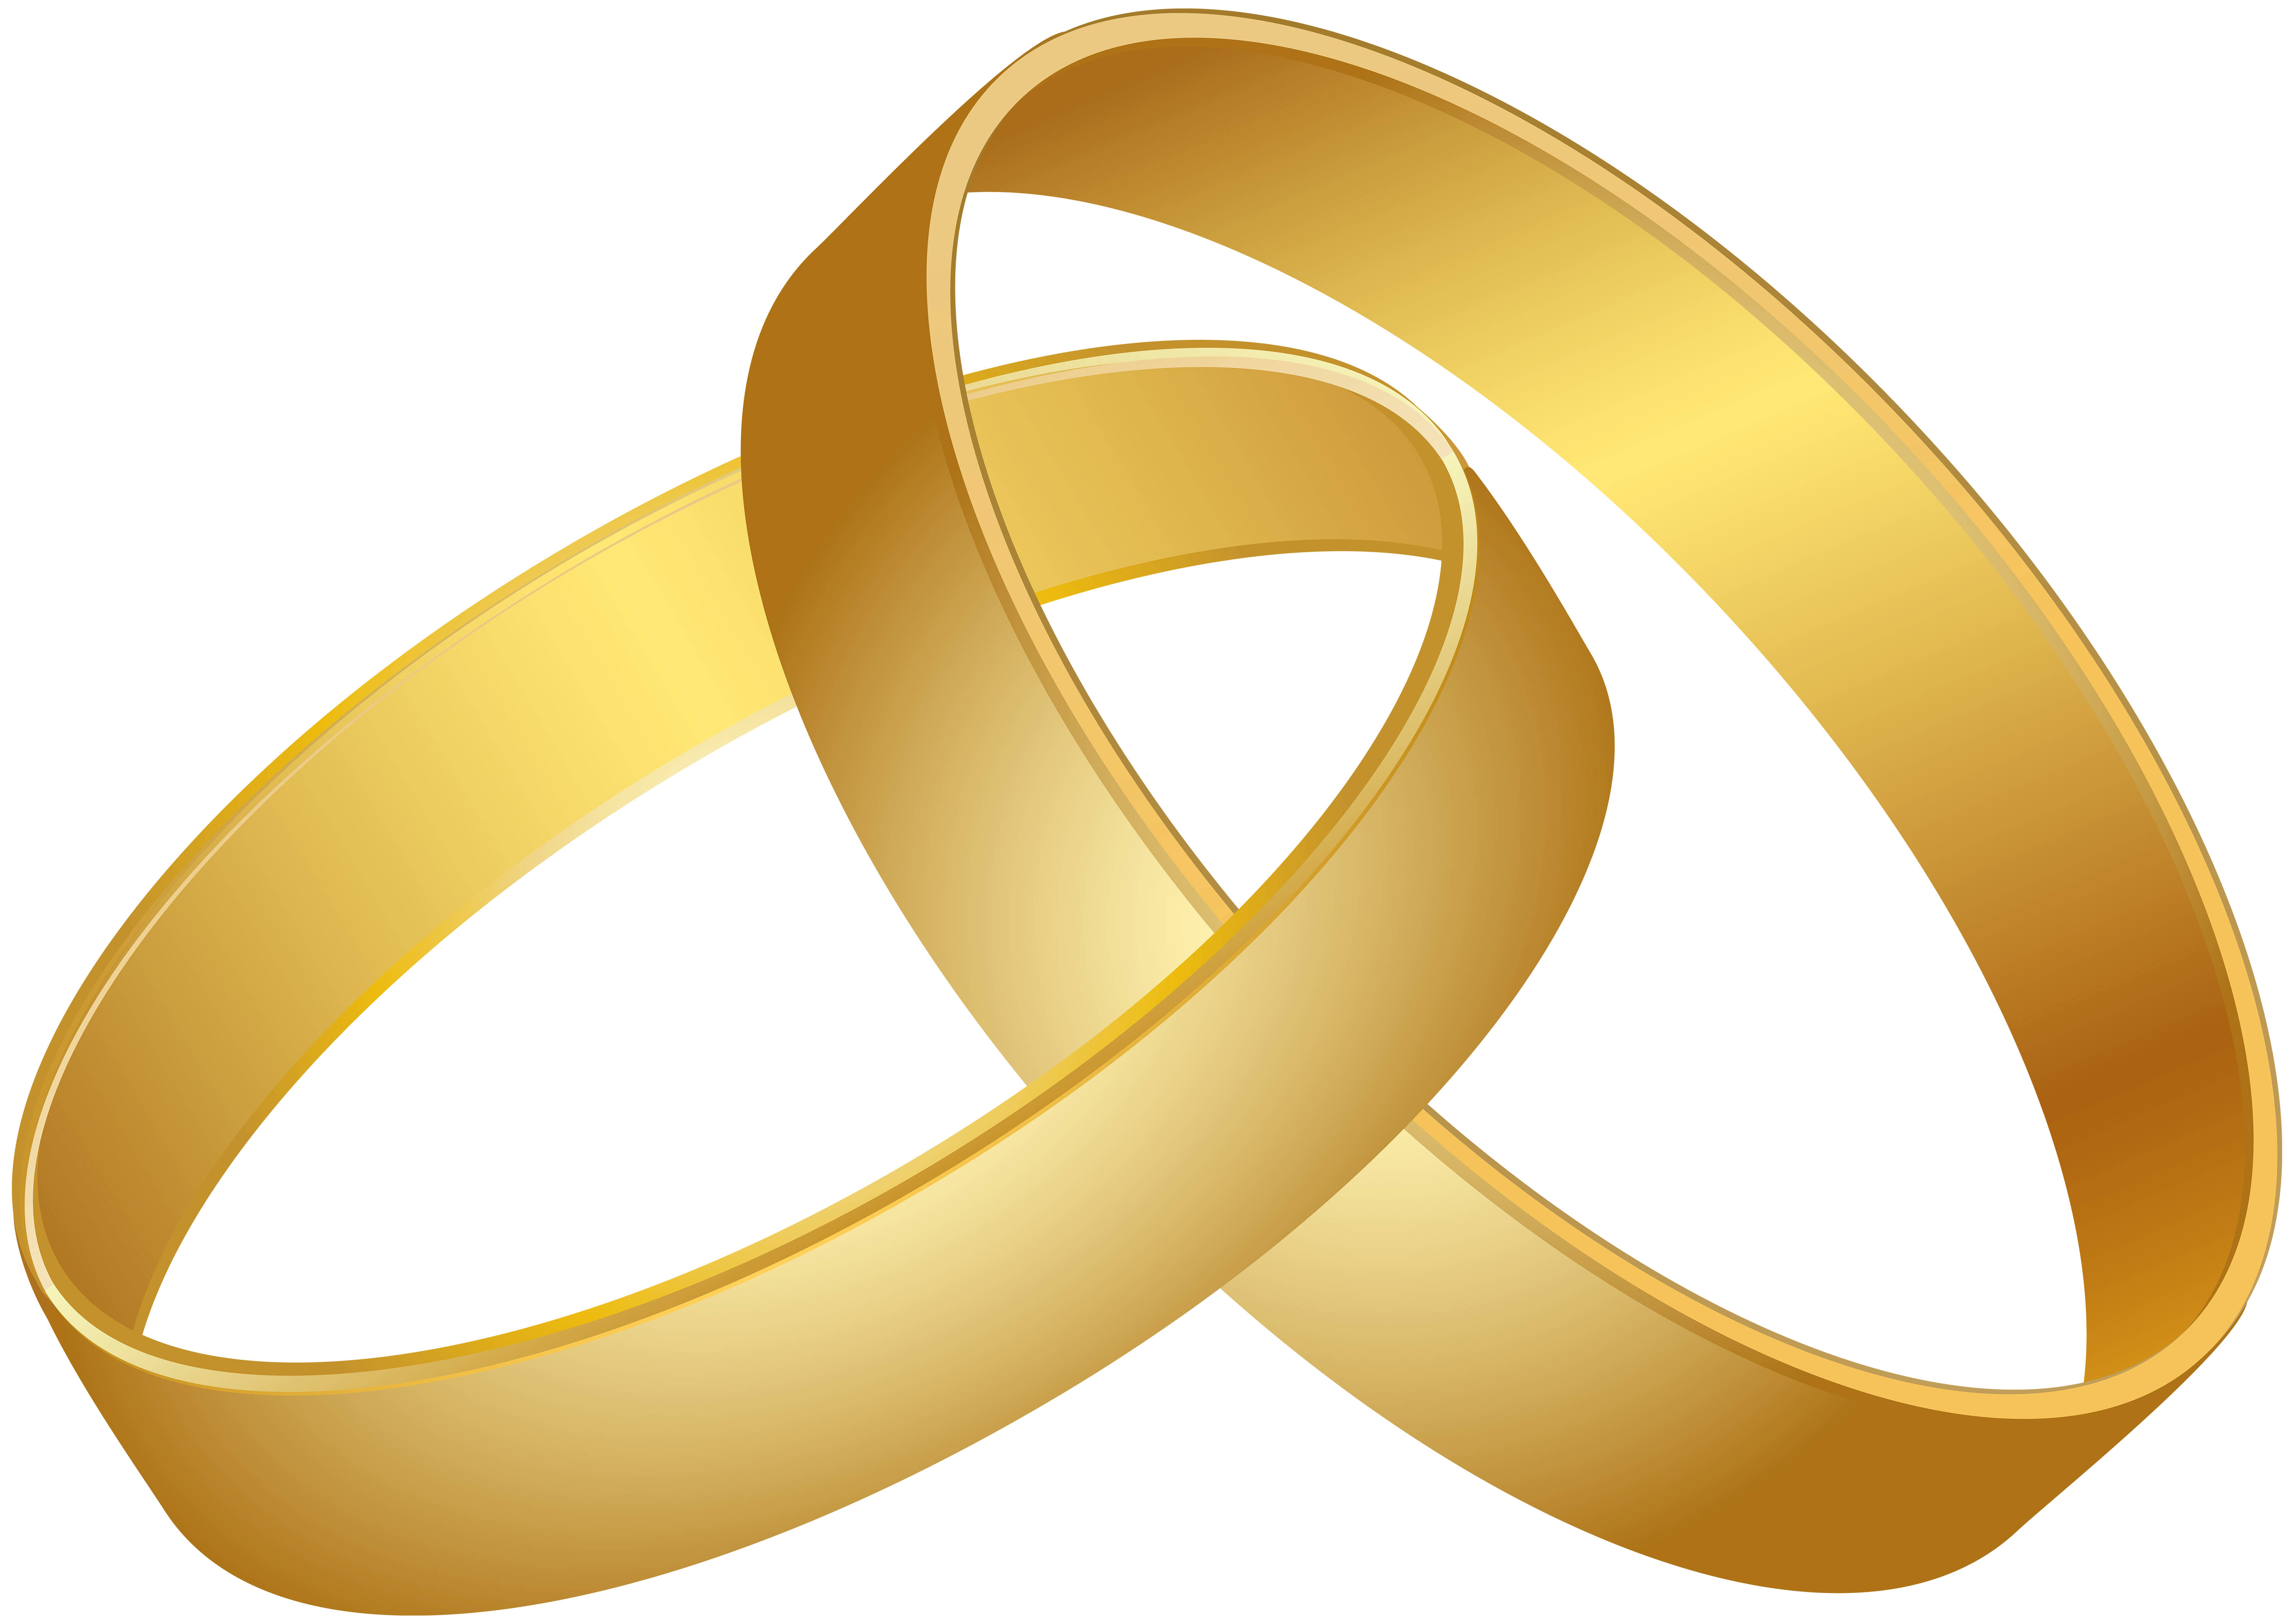 6000x4248 Wedding Fearsomedding Rings Clipart Pictures Inspirations